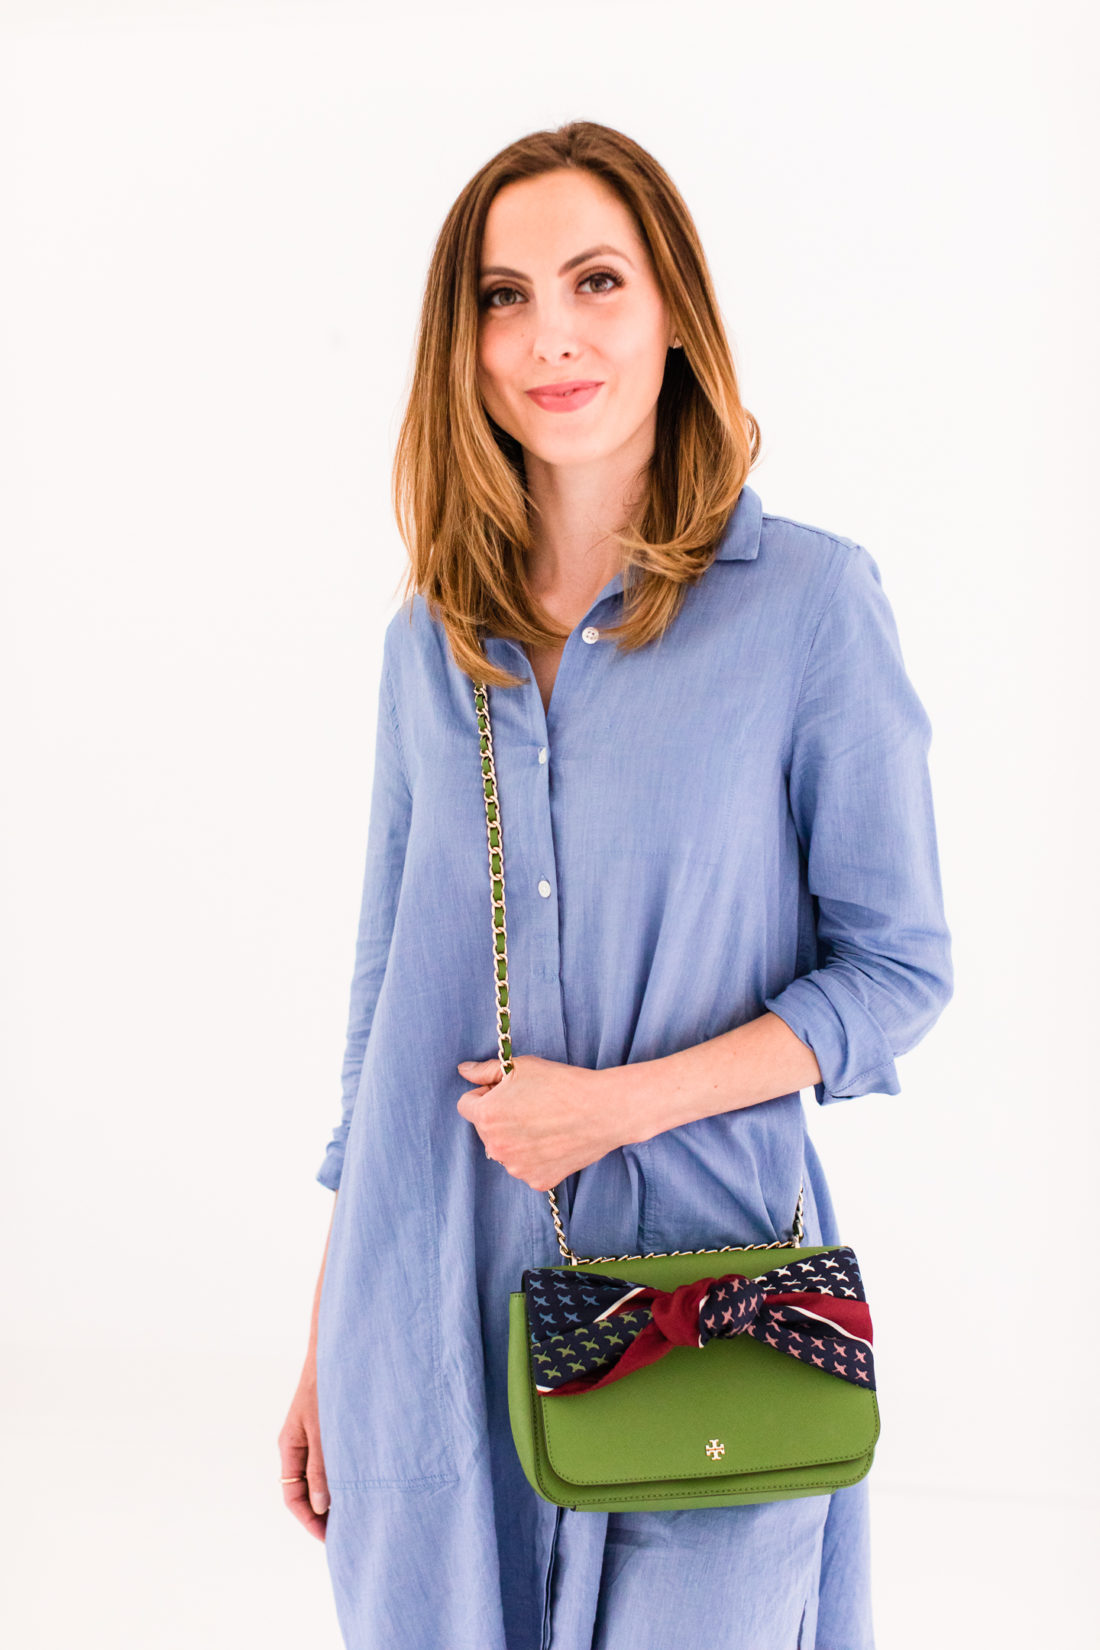 Eva Amurri Martino wears a blue shirt dress and styles a silk scarf to adorn her green tory burch bag